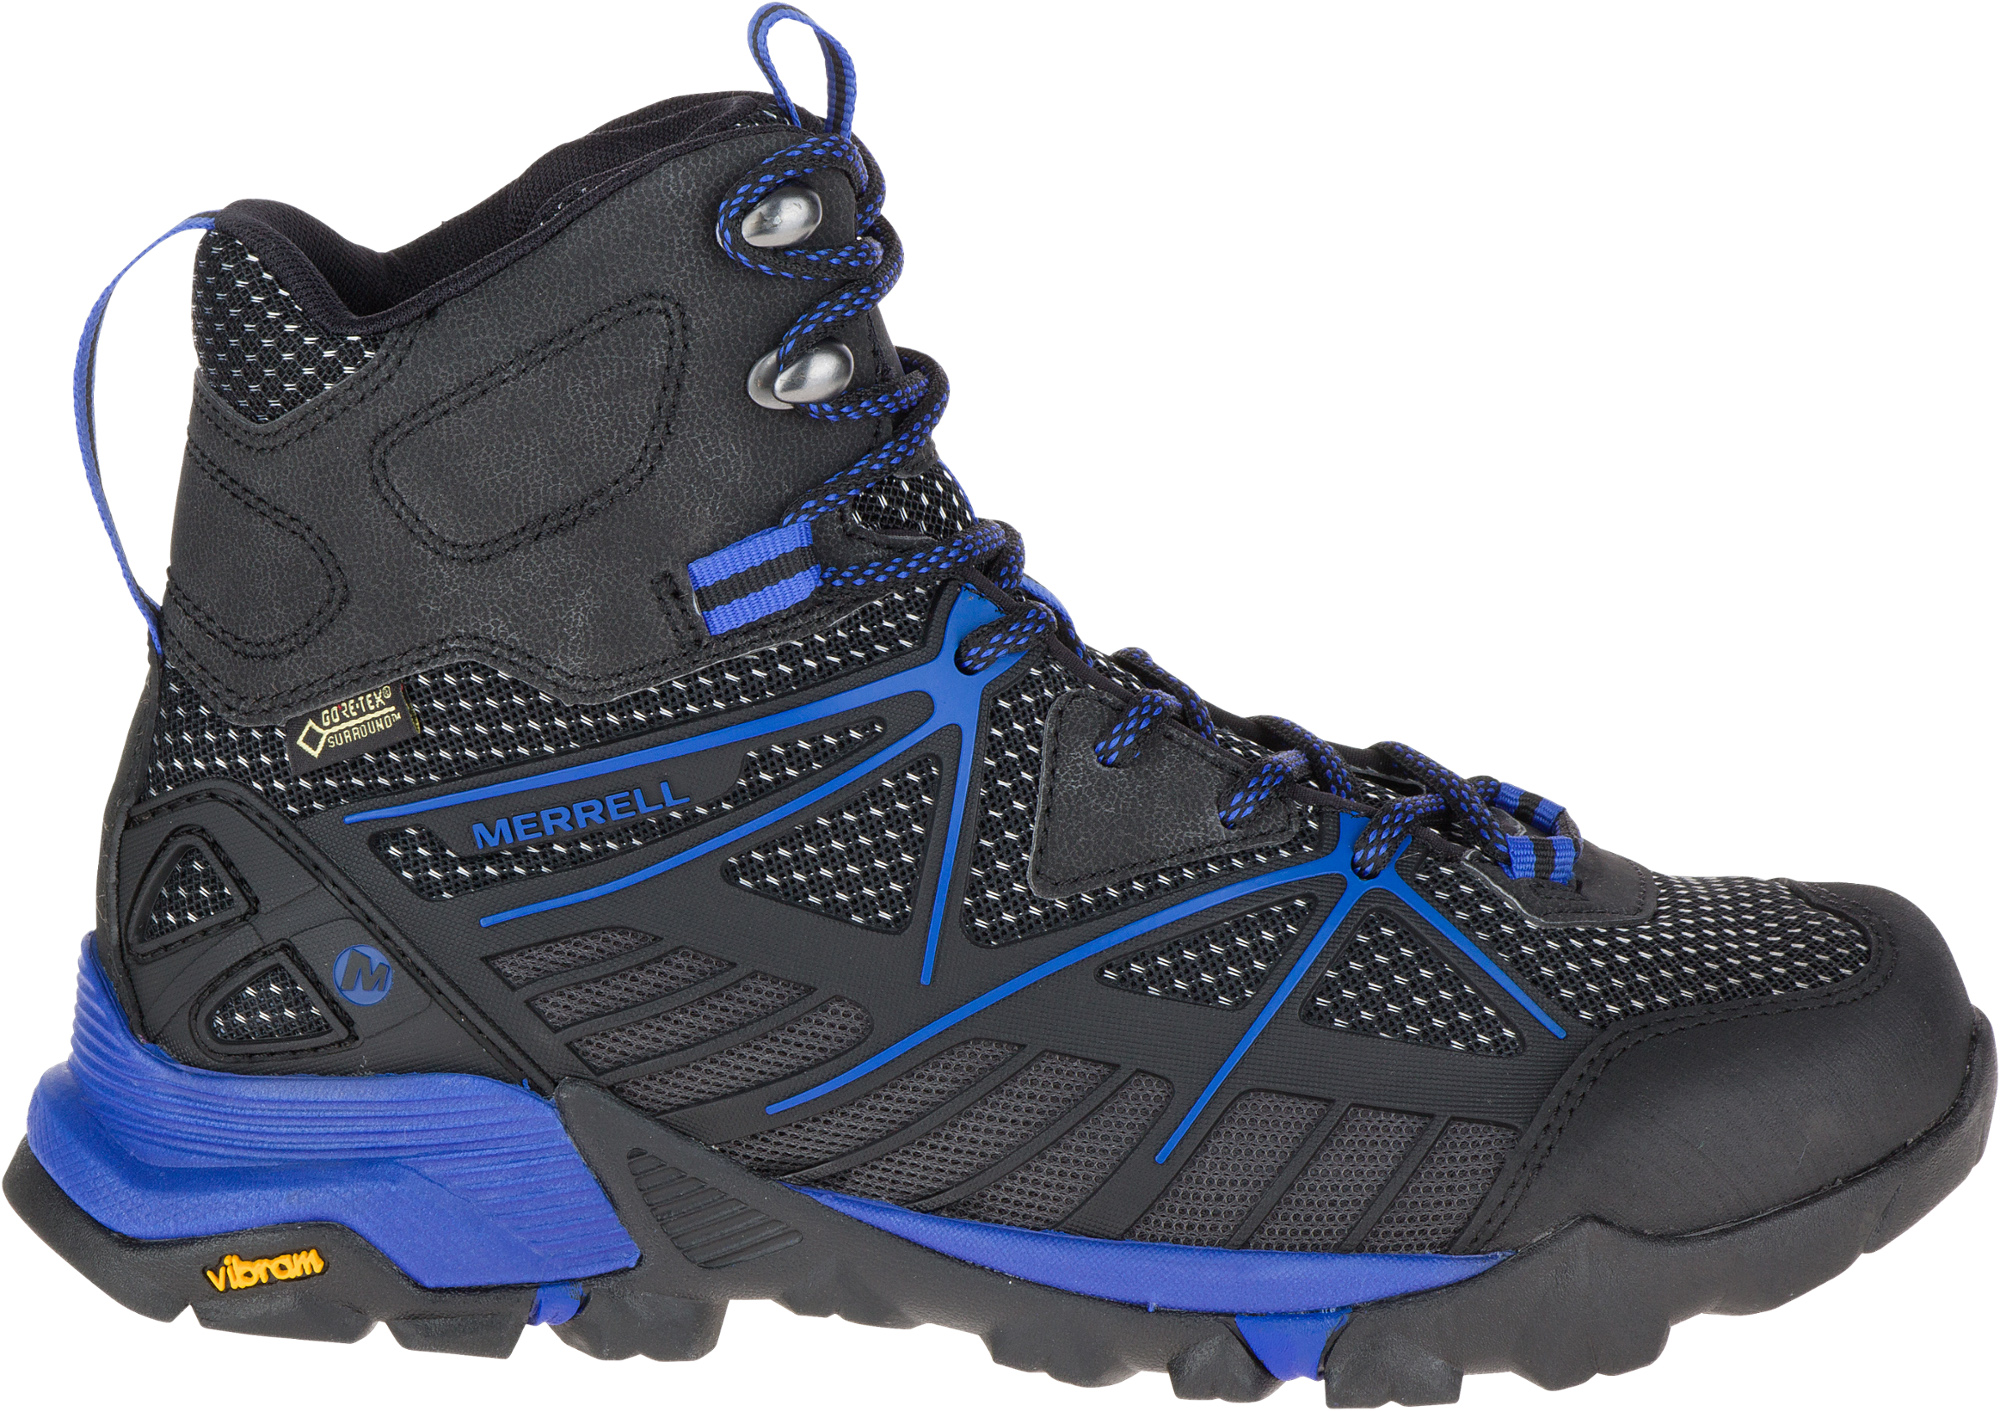 c919ecdf8a3d7 Boot Bargains: Save an Extra 25% on Several Hikers From REI  https://ift.tt/2yUmt93